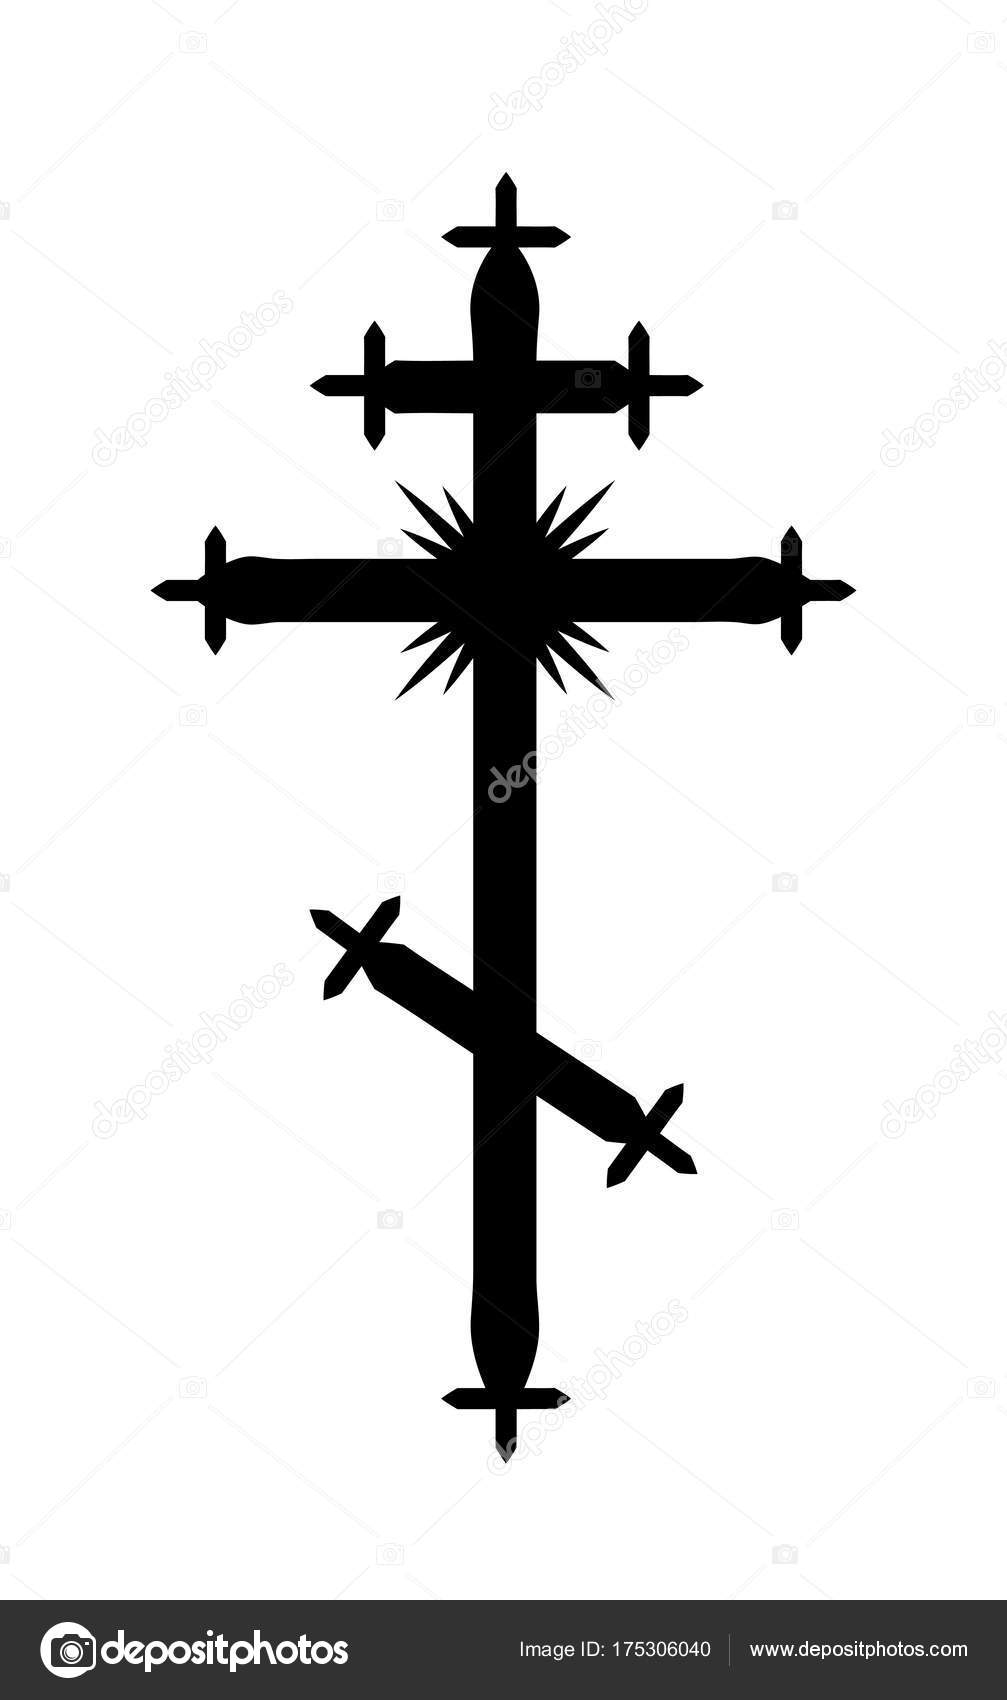 Catholic cross and Orthodox: what are the differences 79